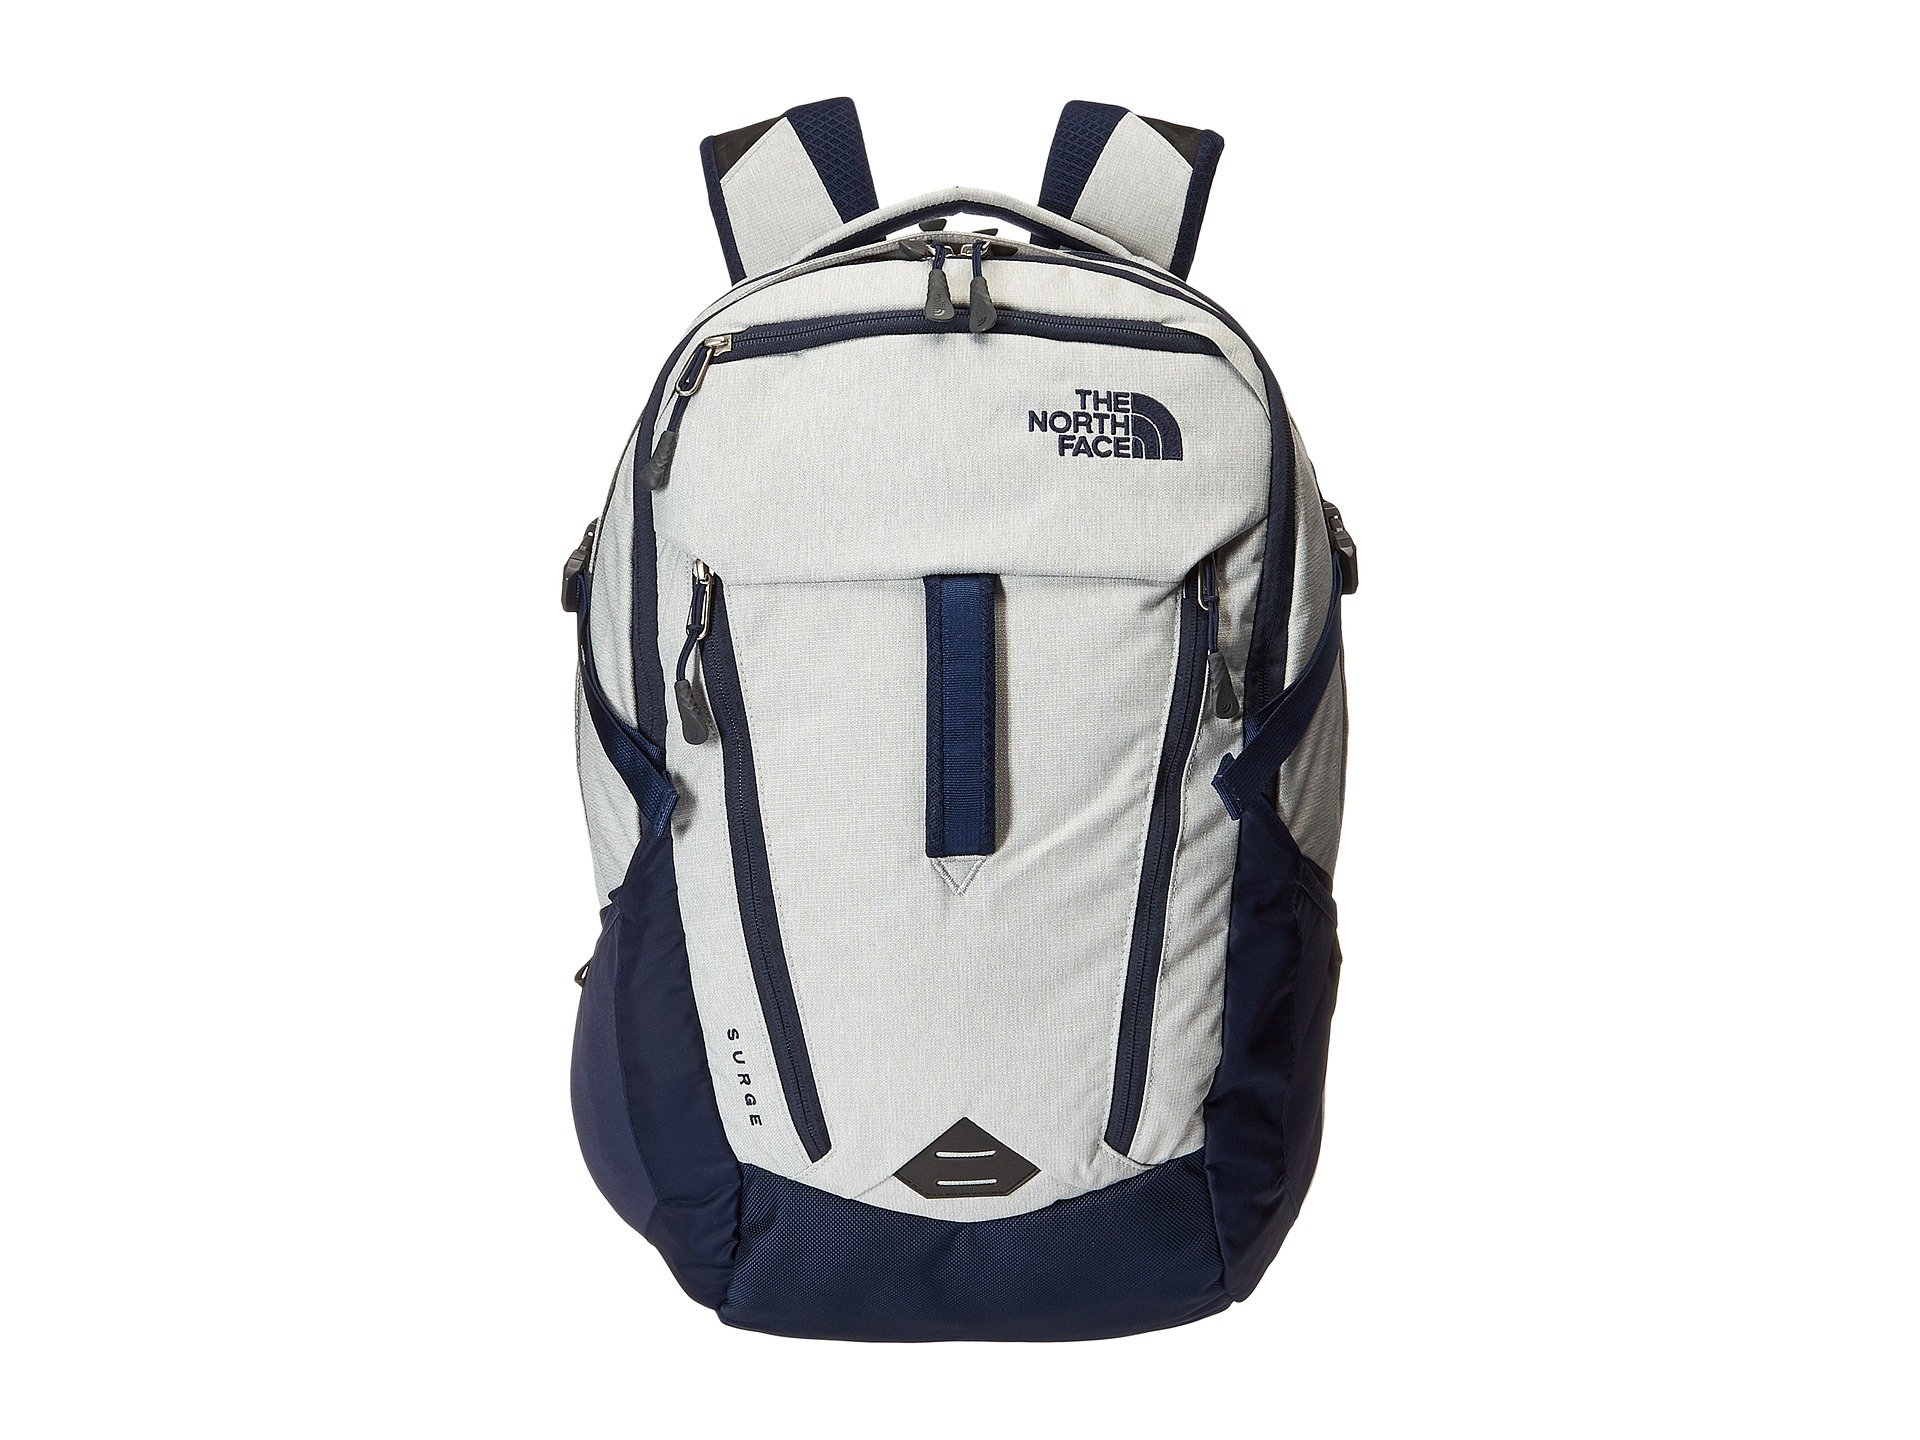 0456749a2 Mens North Face Surge Backpack - CEAGESP